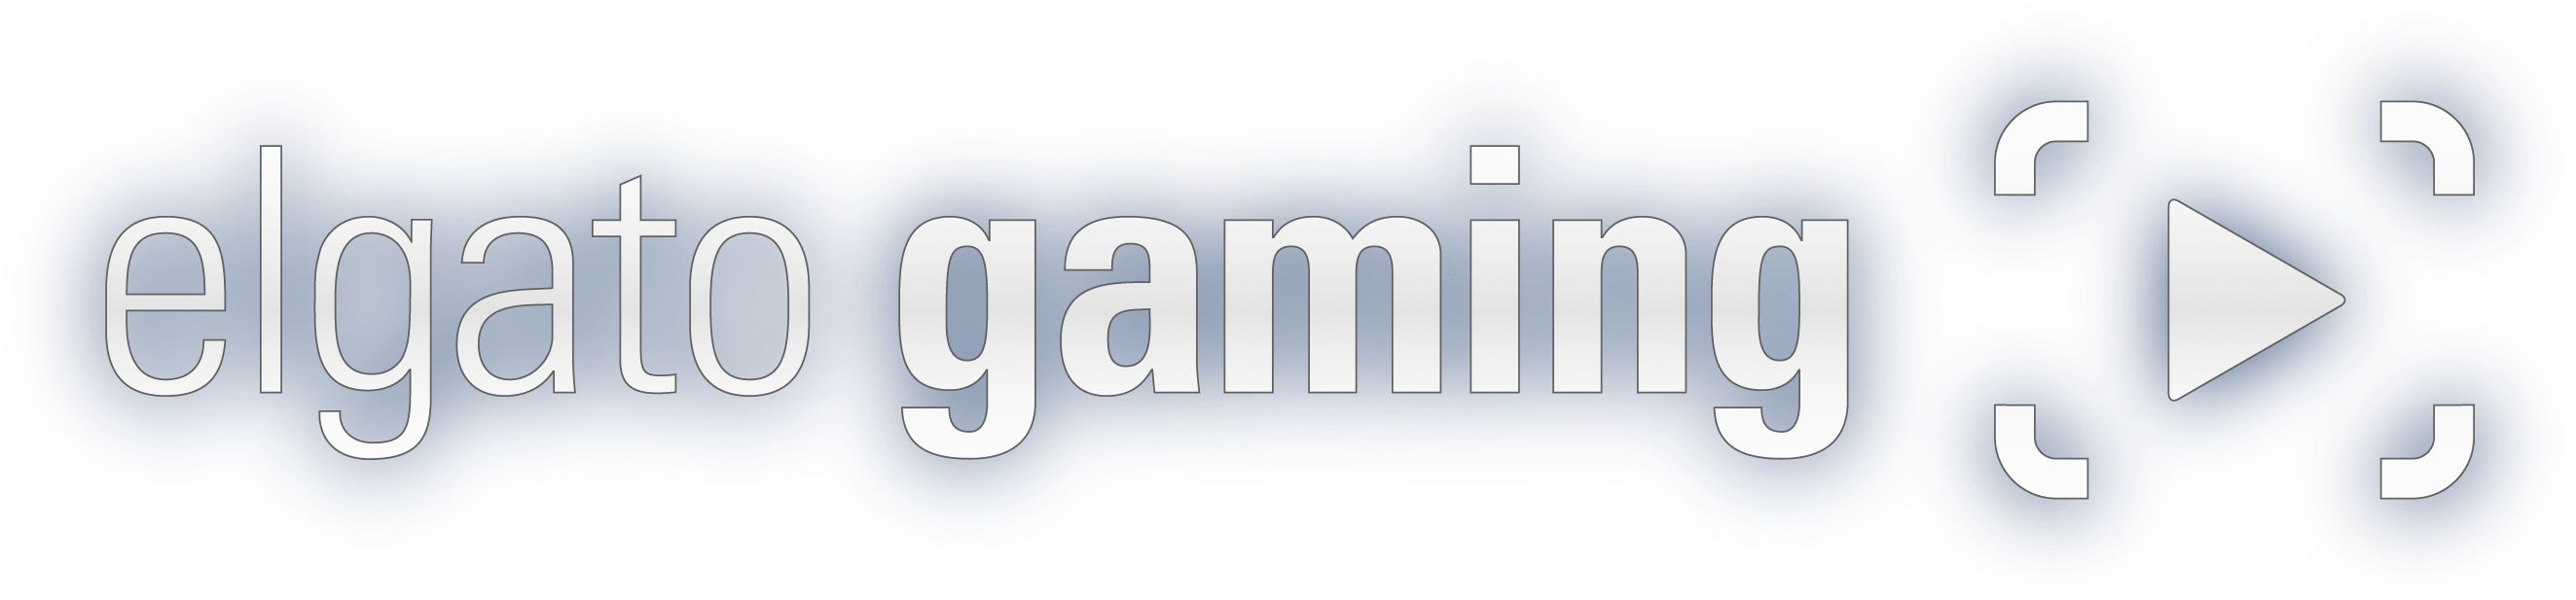 Elgato gaming png. Game capture hd unboxing